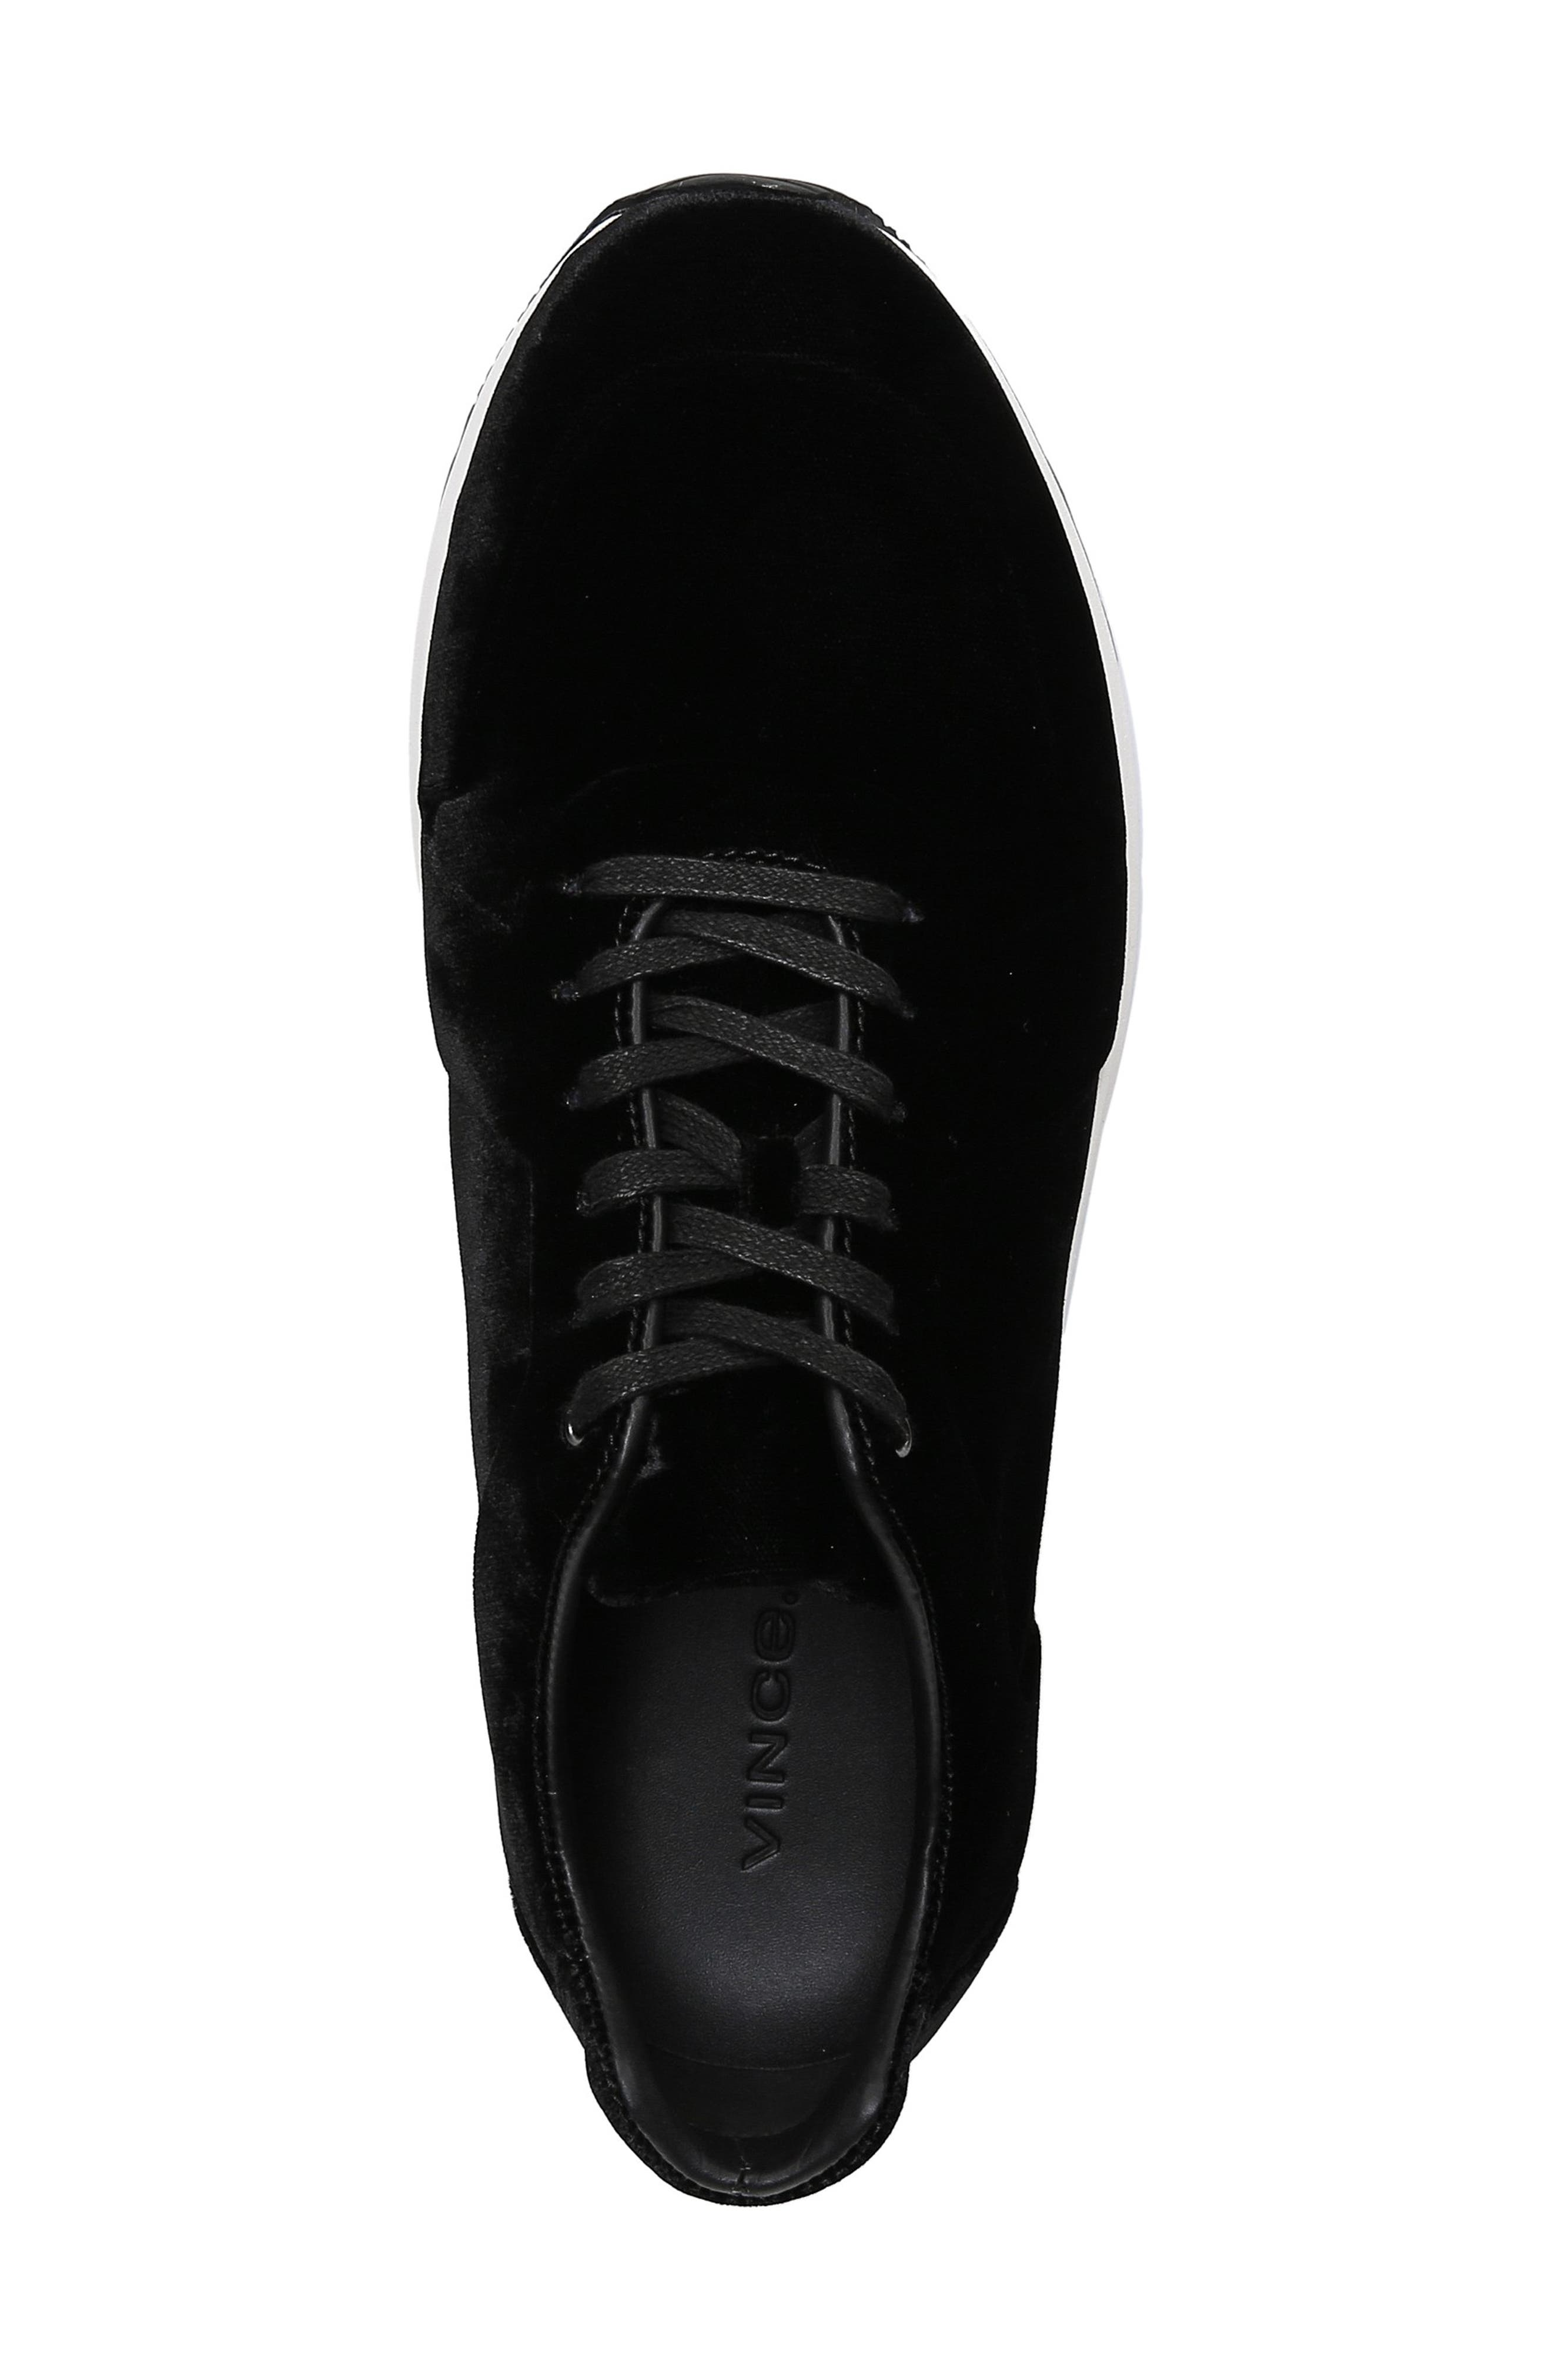 Garret Sneaker,                             Alternate thumbnail 5, color,                             BLACK